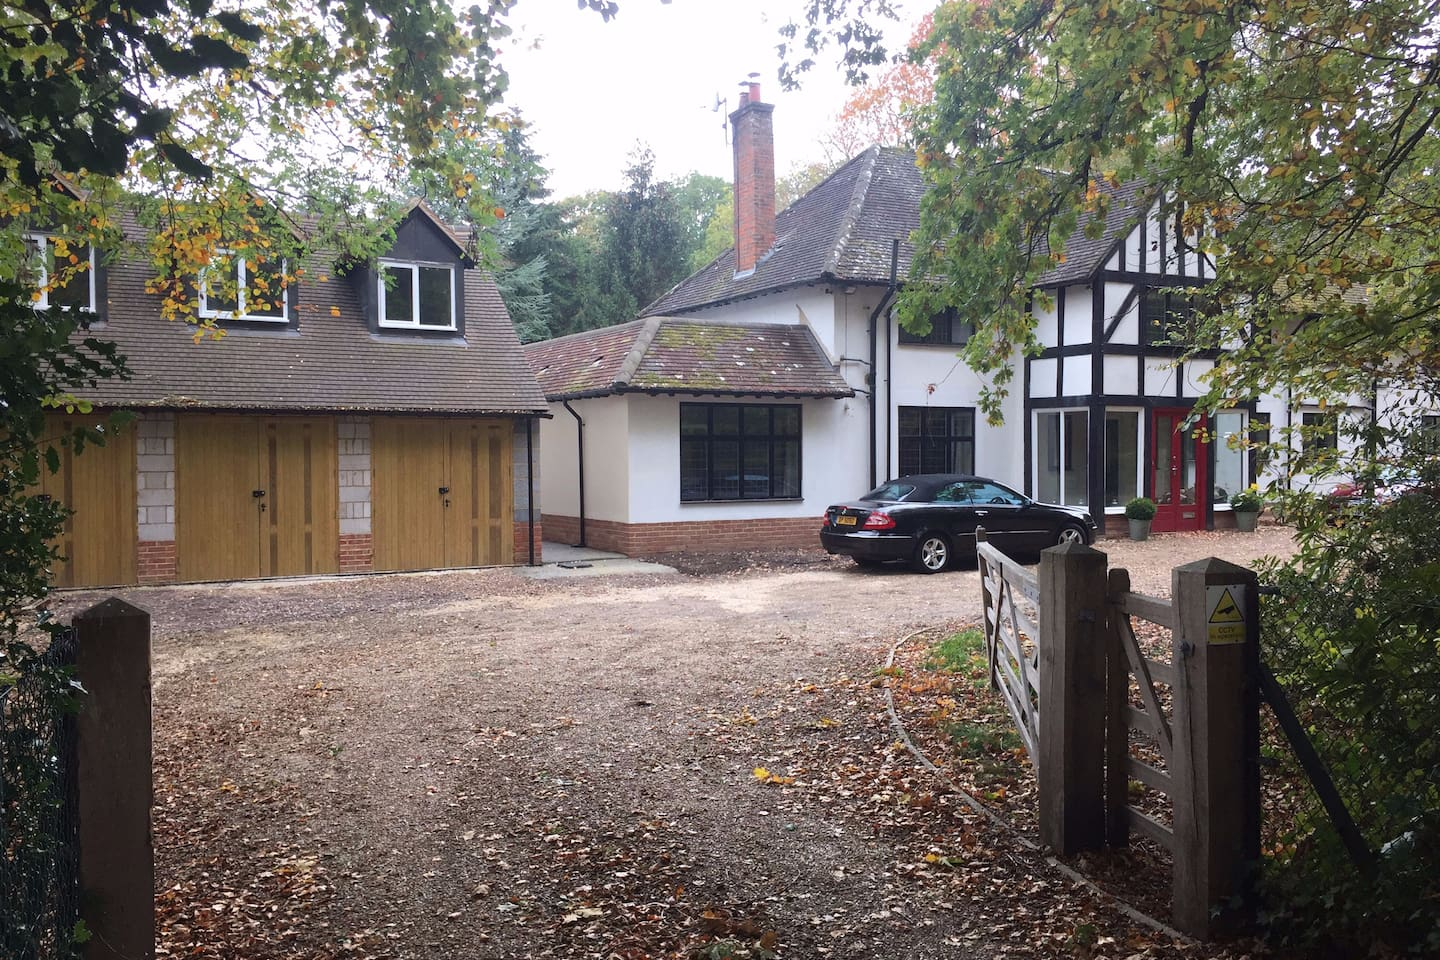 Annexe is separate to the main house